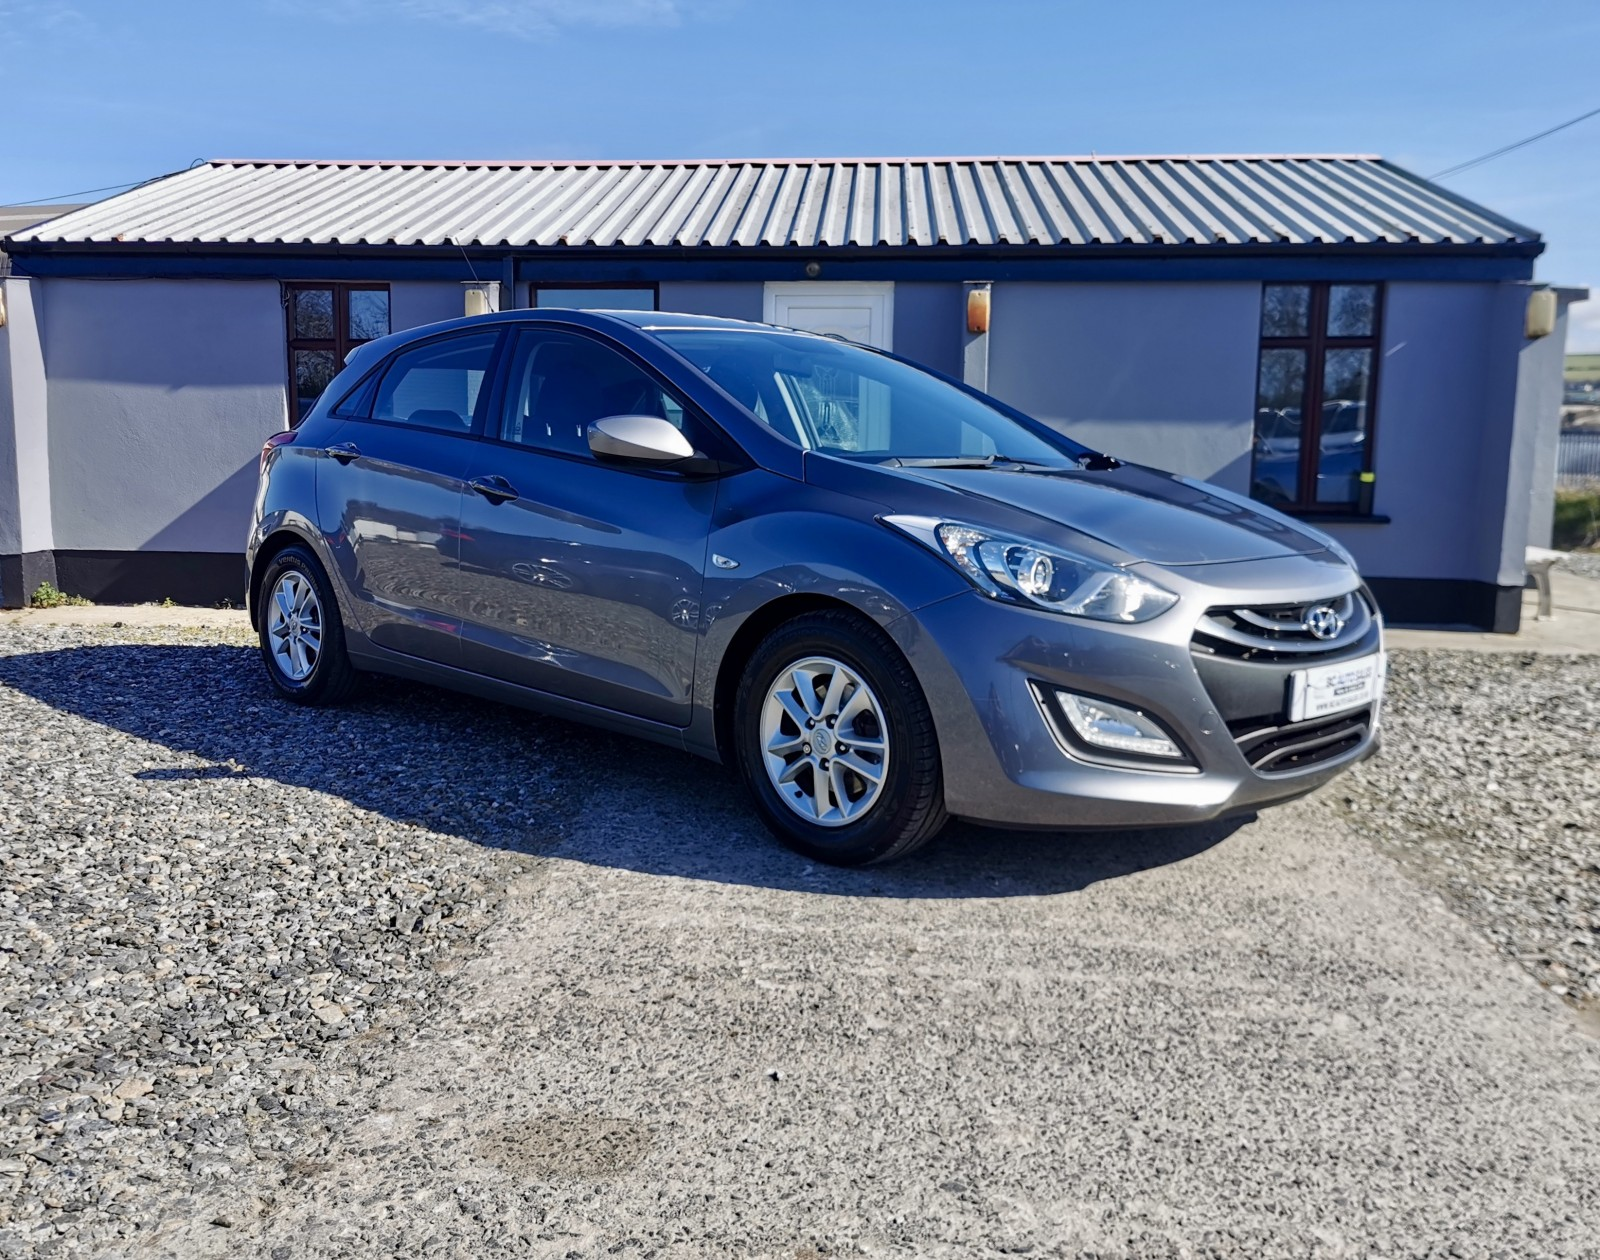 2013 Hyundai i30 CRDI ACTIVE BLUE DRIVE Diesel Manual – BC Autosales 17A Airfield Road, Eglinton, Londonderry BT47 3PZ, UK